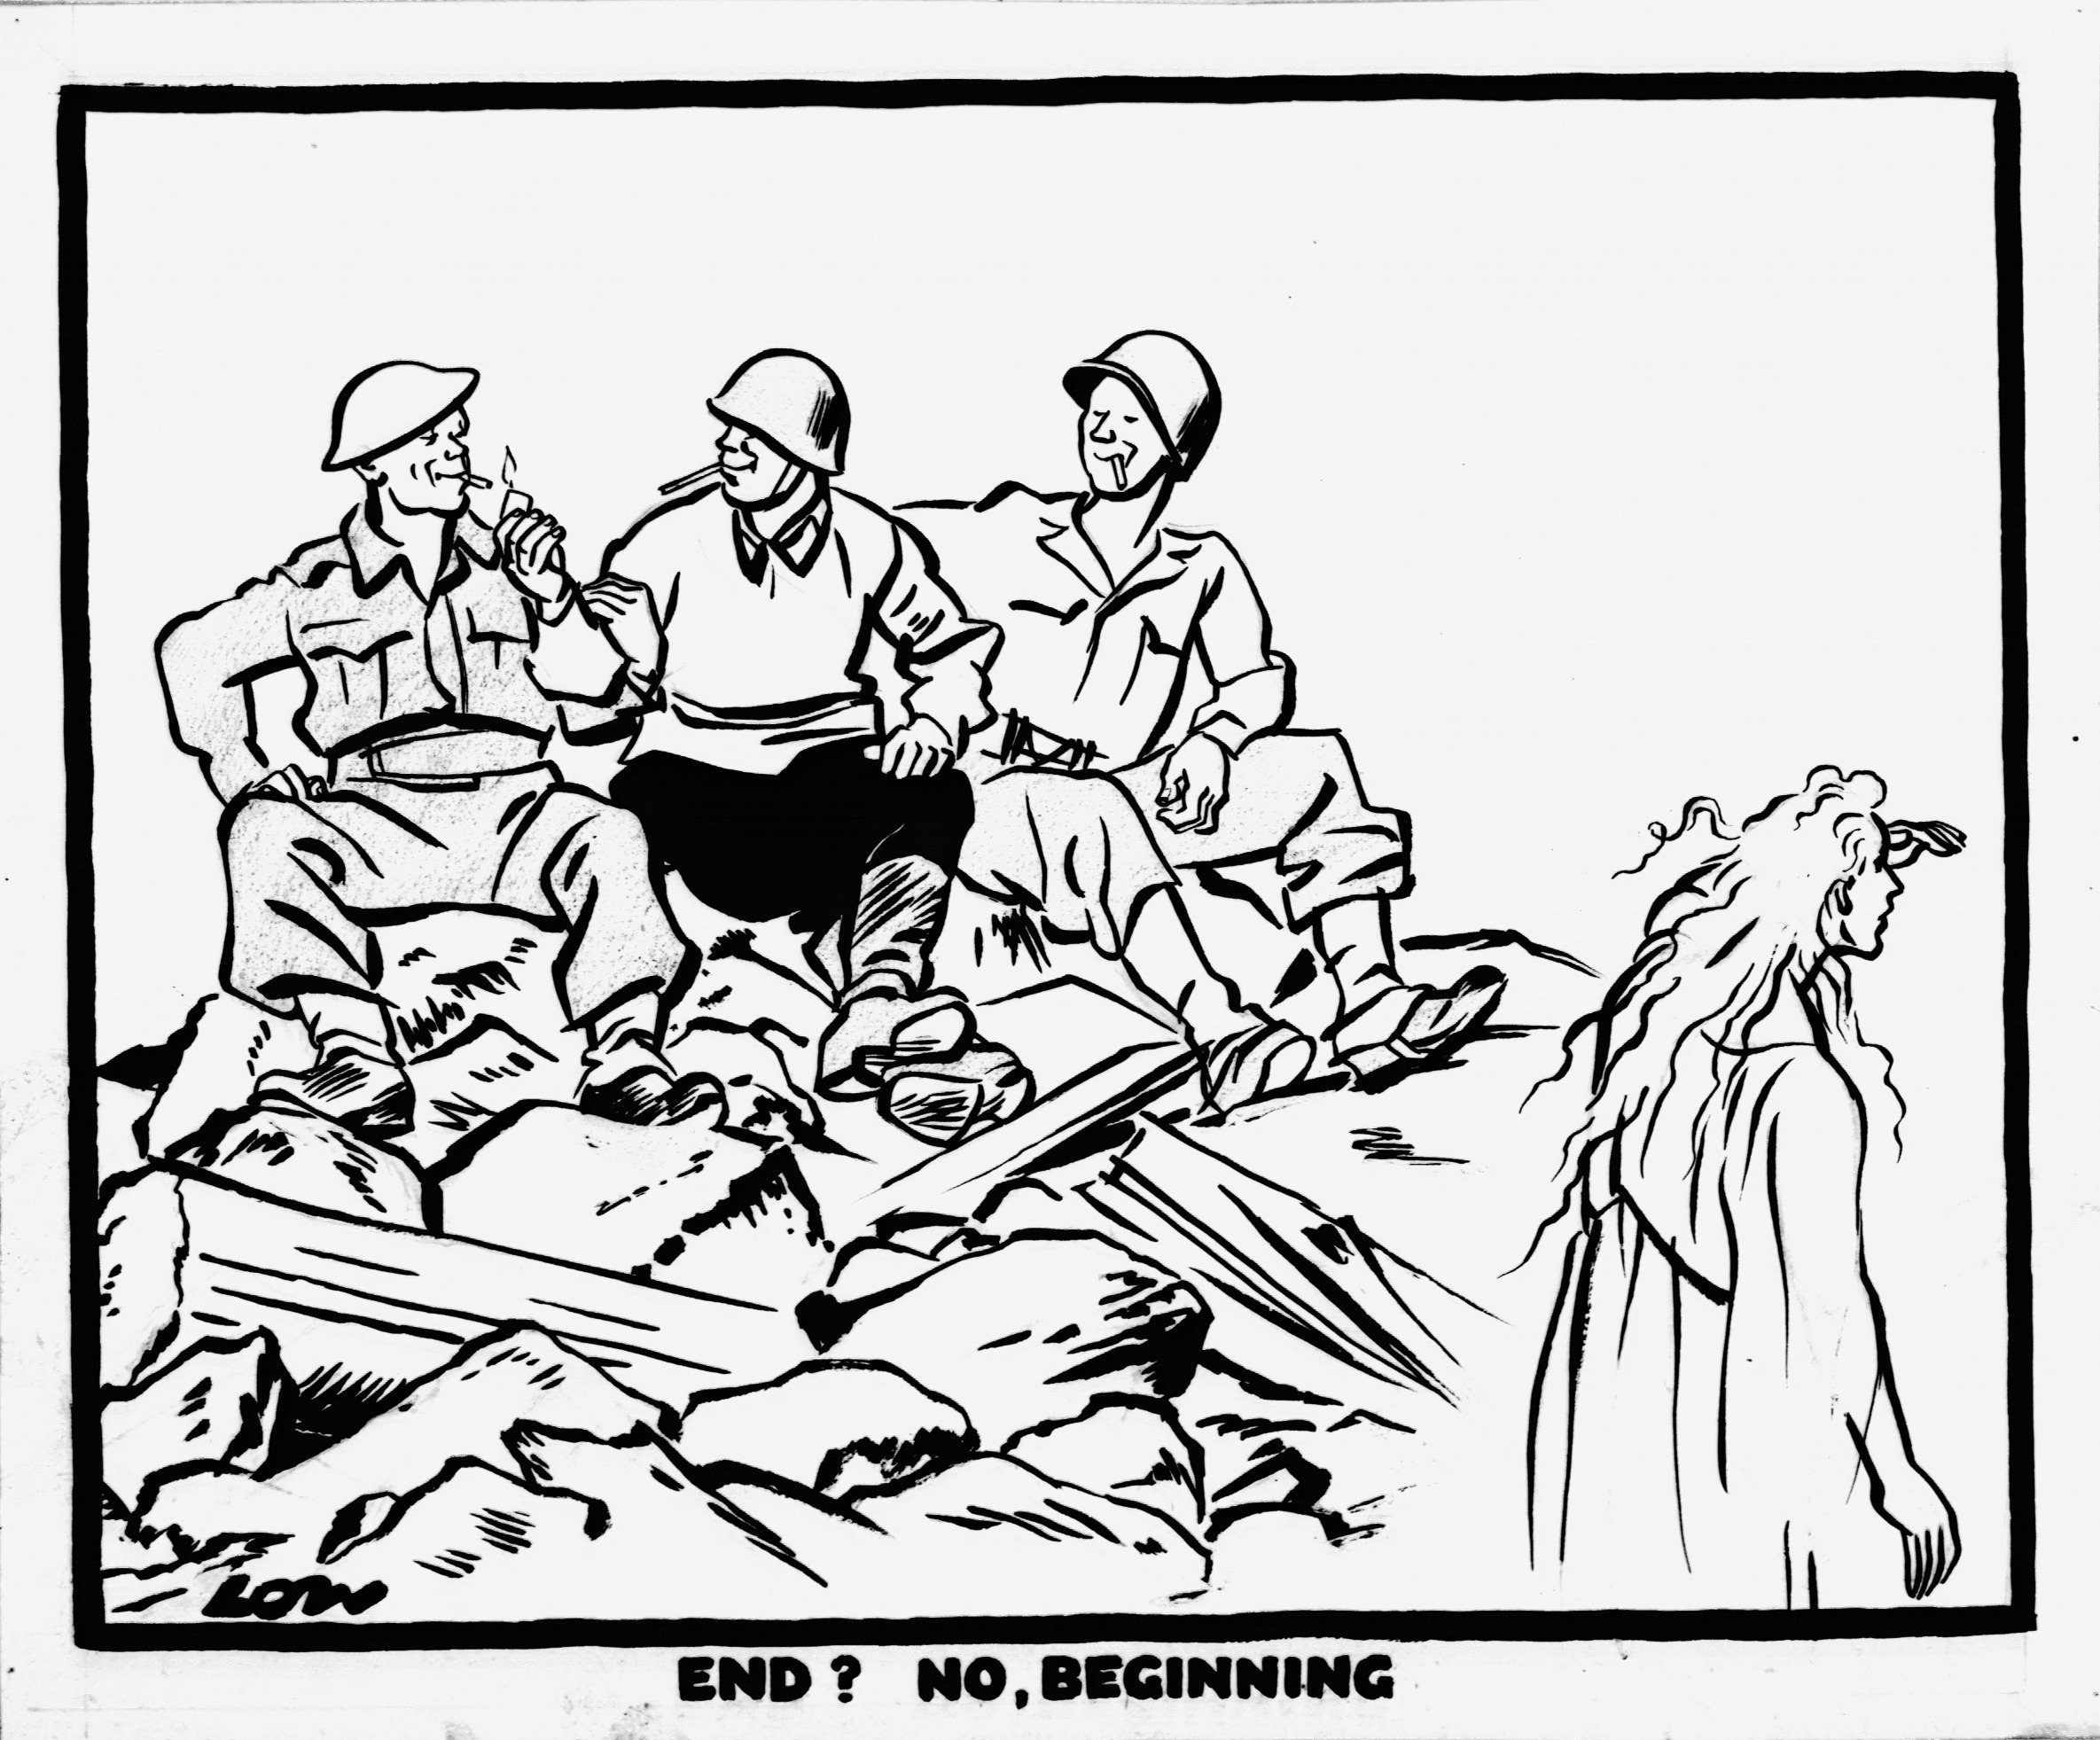 David Low, 'End? No - beginning', Evening Standard, 11th May 1945 (DL2417)